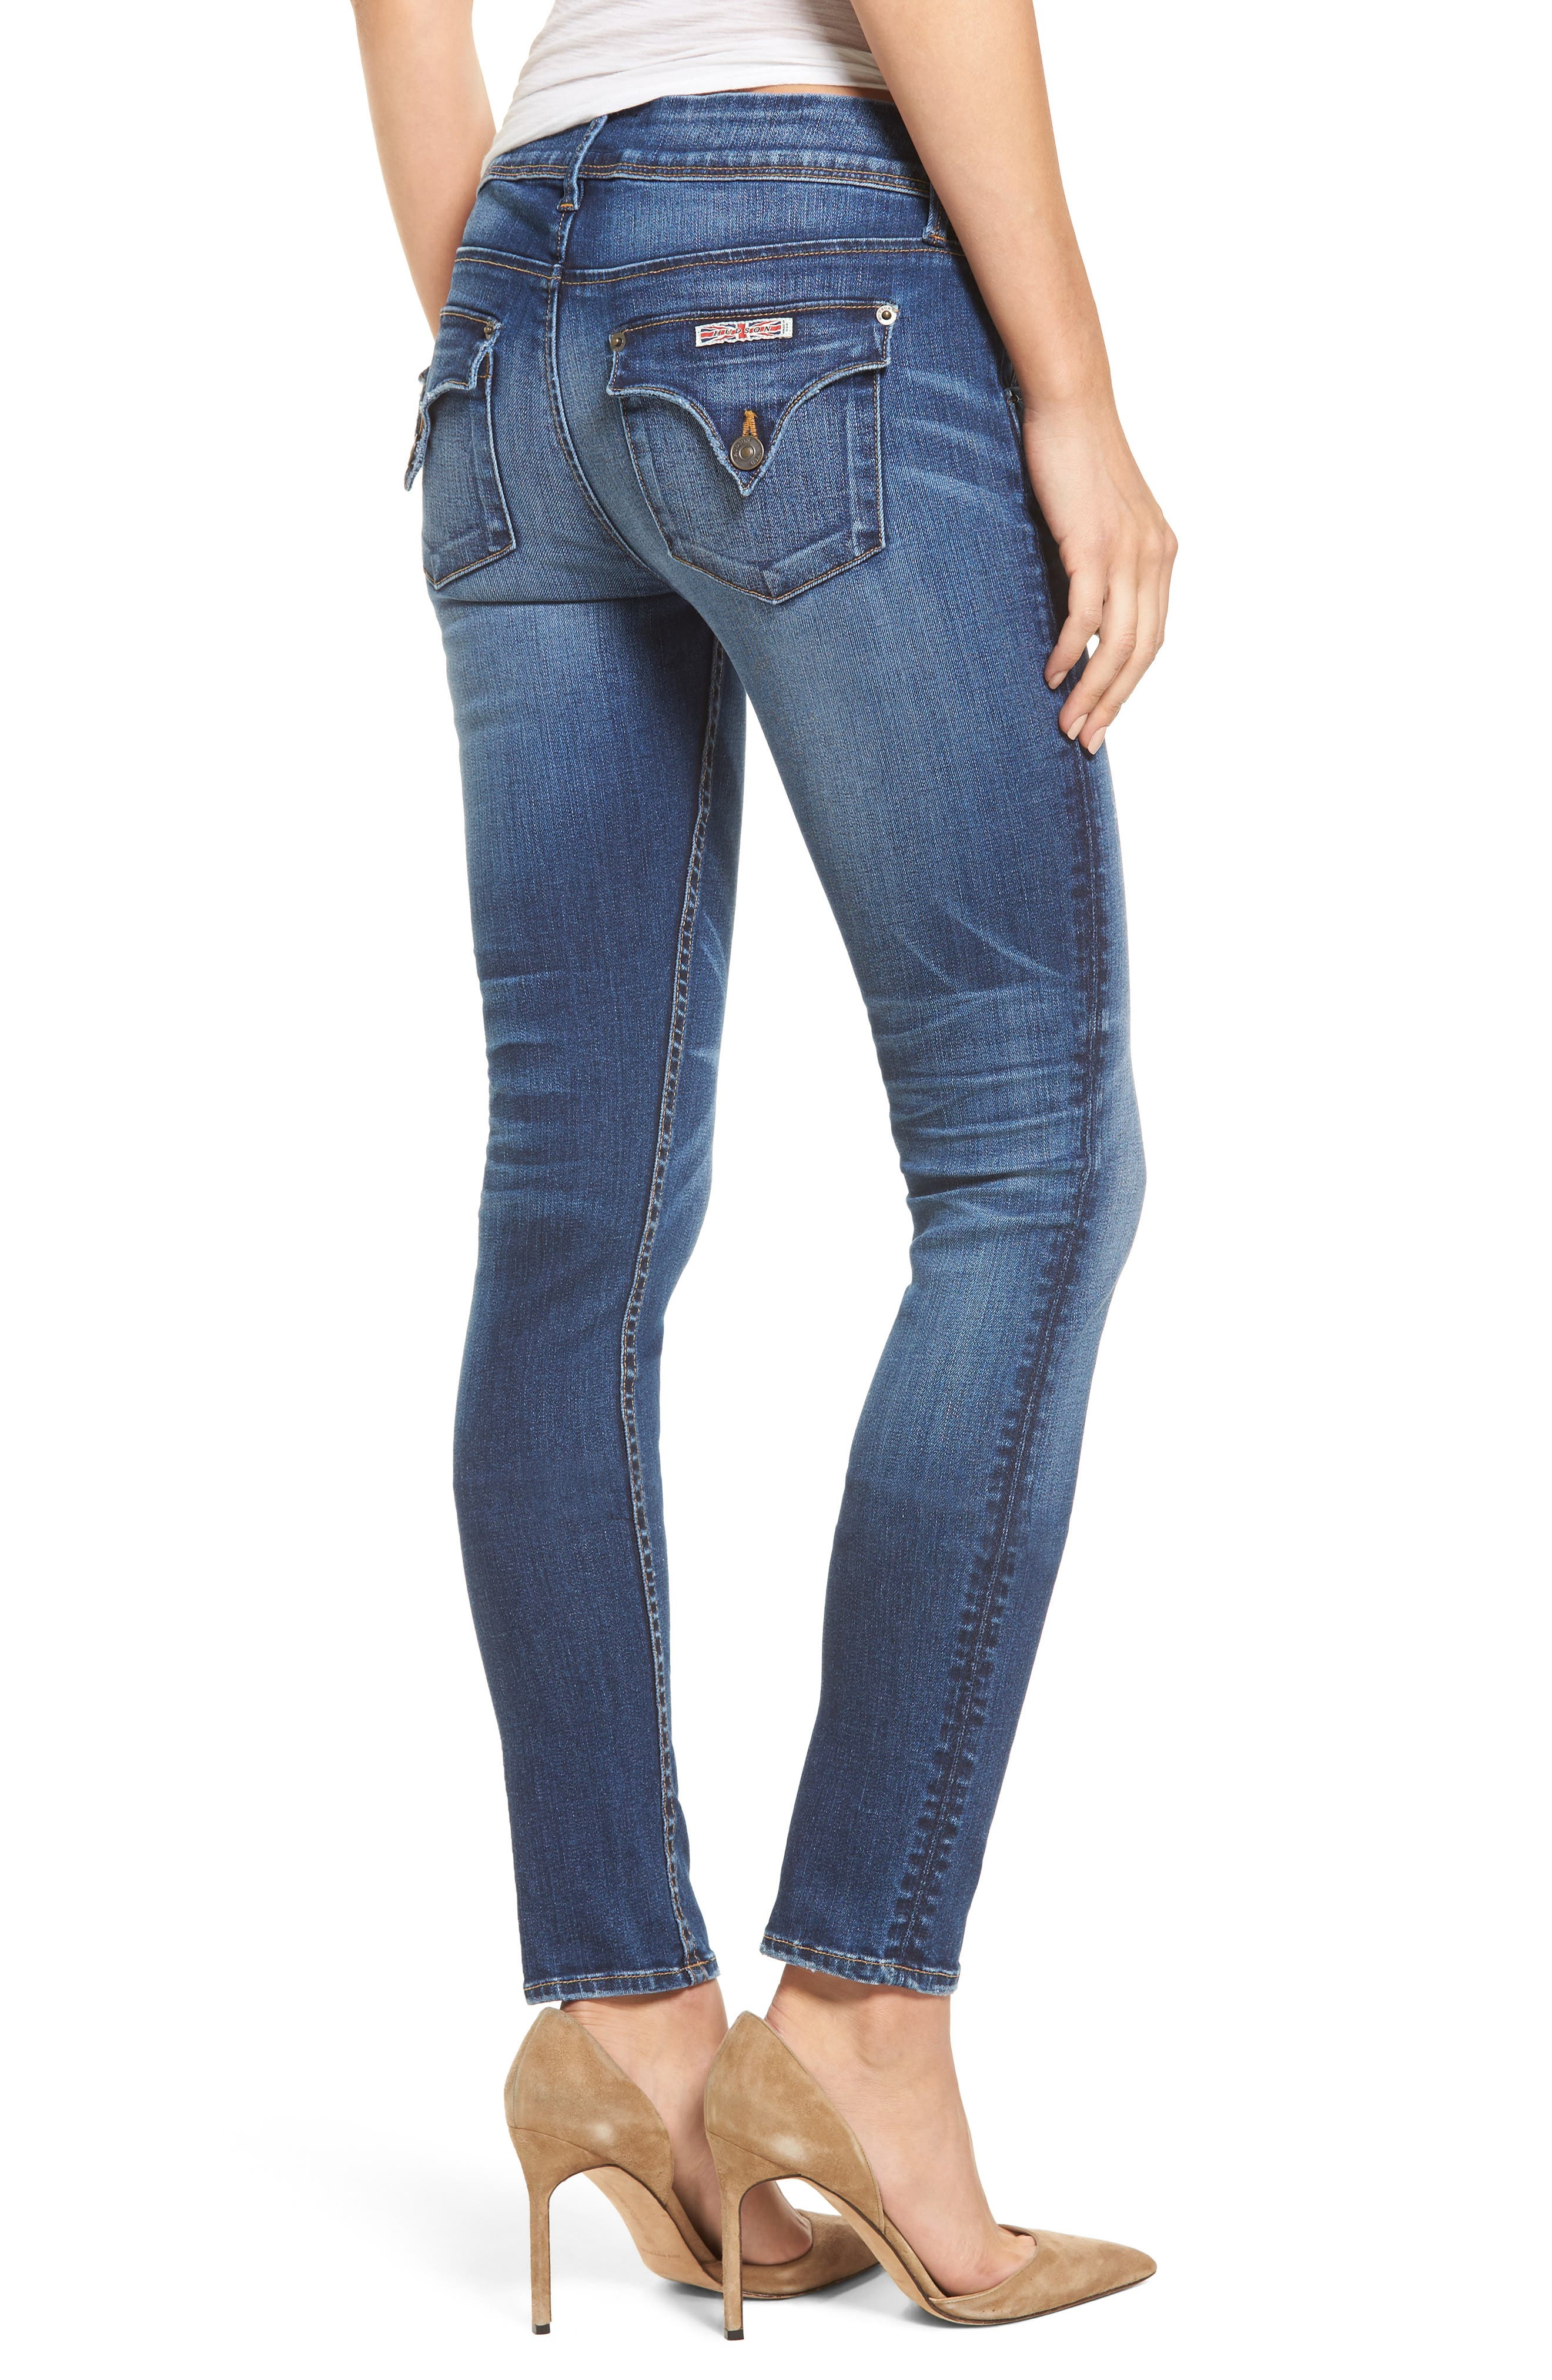 Collin Supermodel Skinny Jeans,                             Alternate thumbnail 2, color,                             Contender